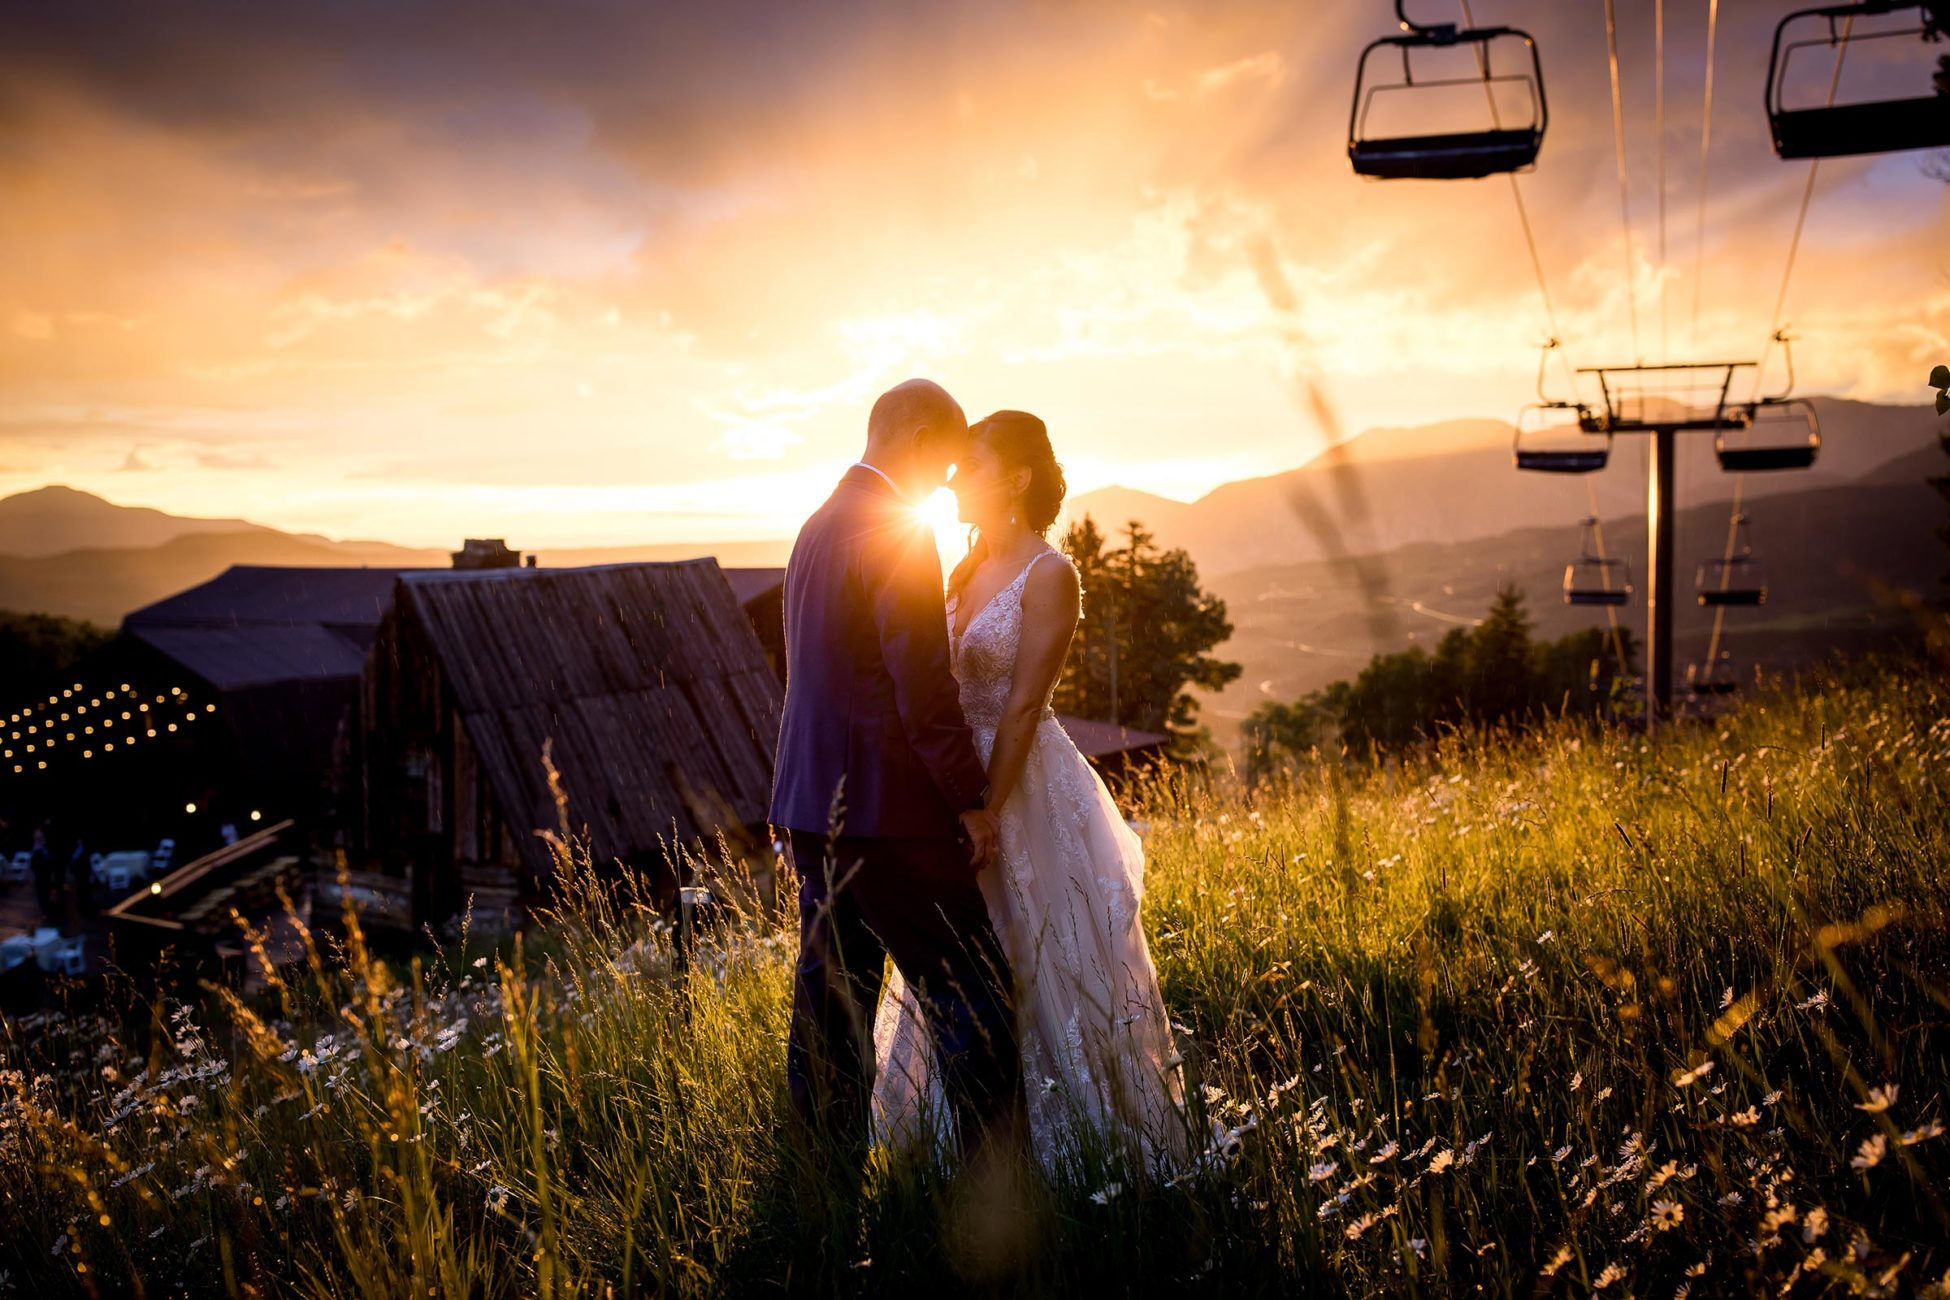 A beautiful destination wedding at Gorrono Ranch in the mountains of Telluride, Colorado